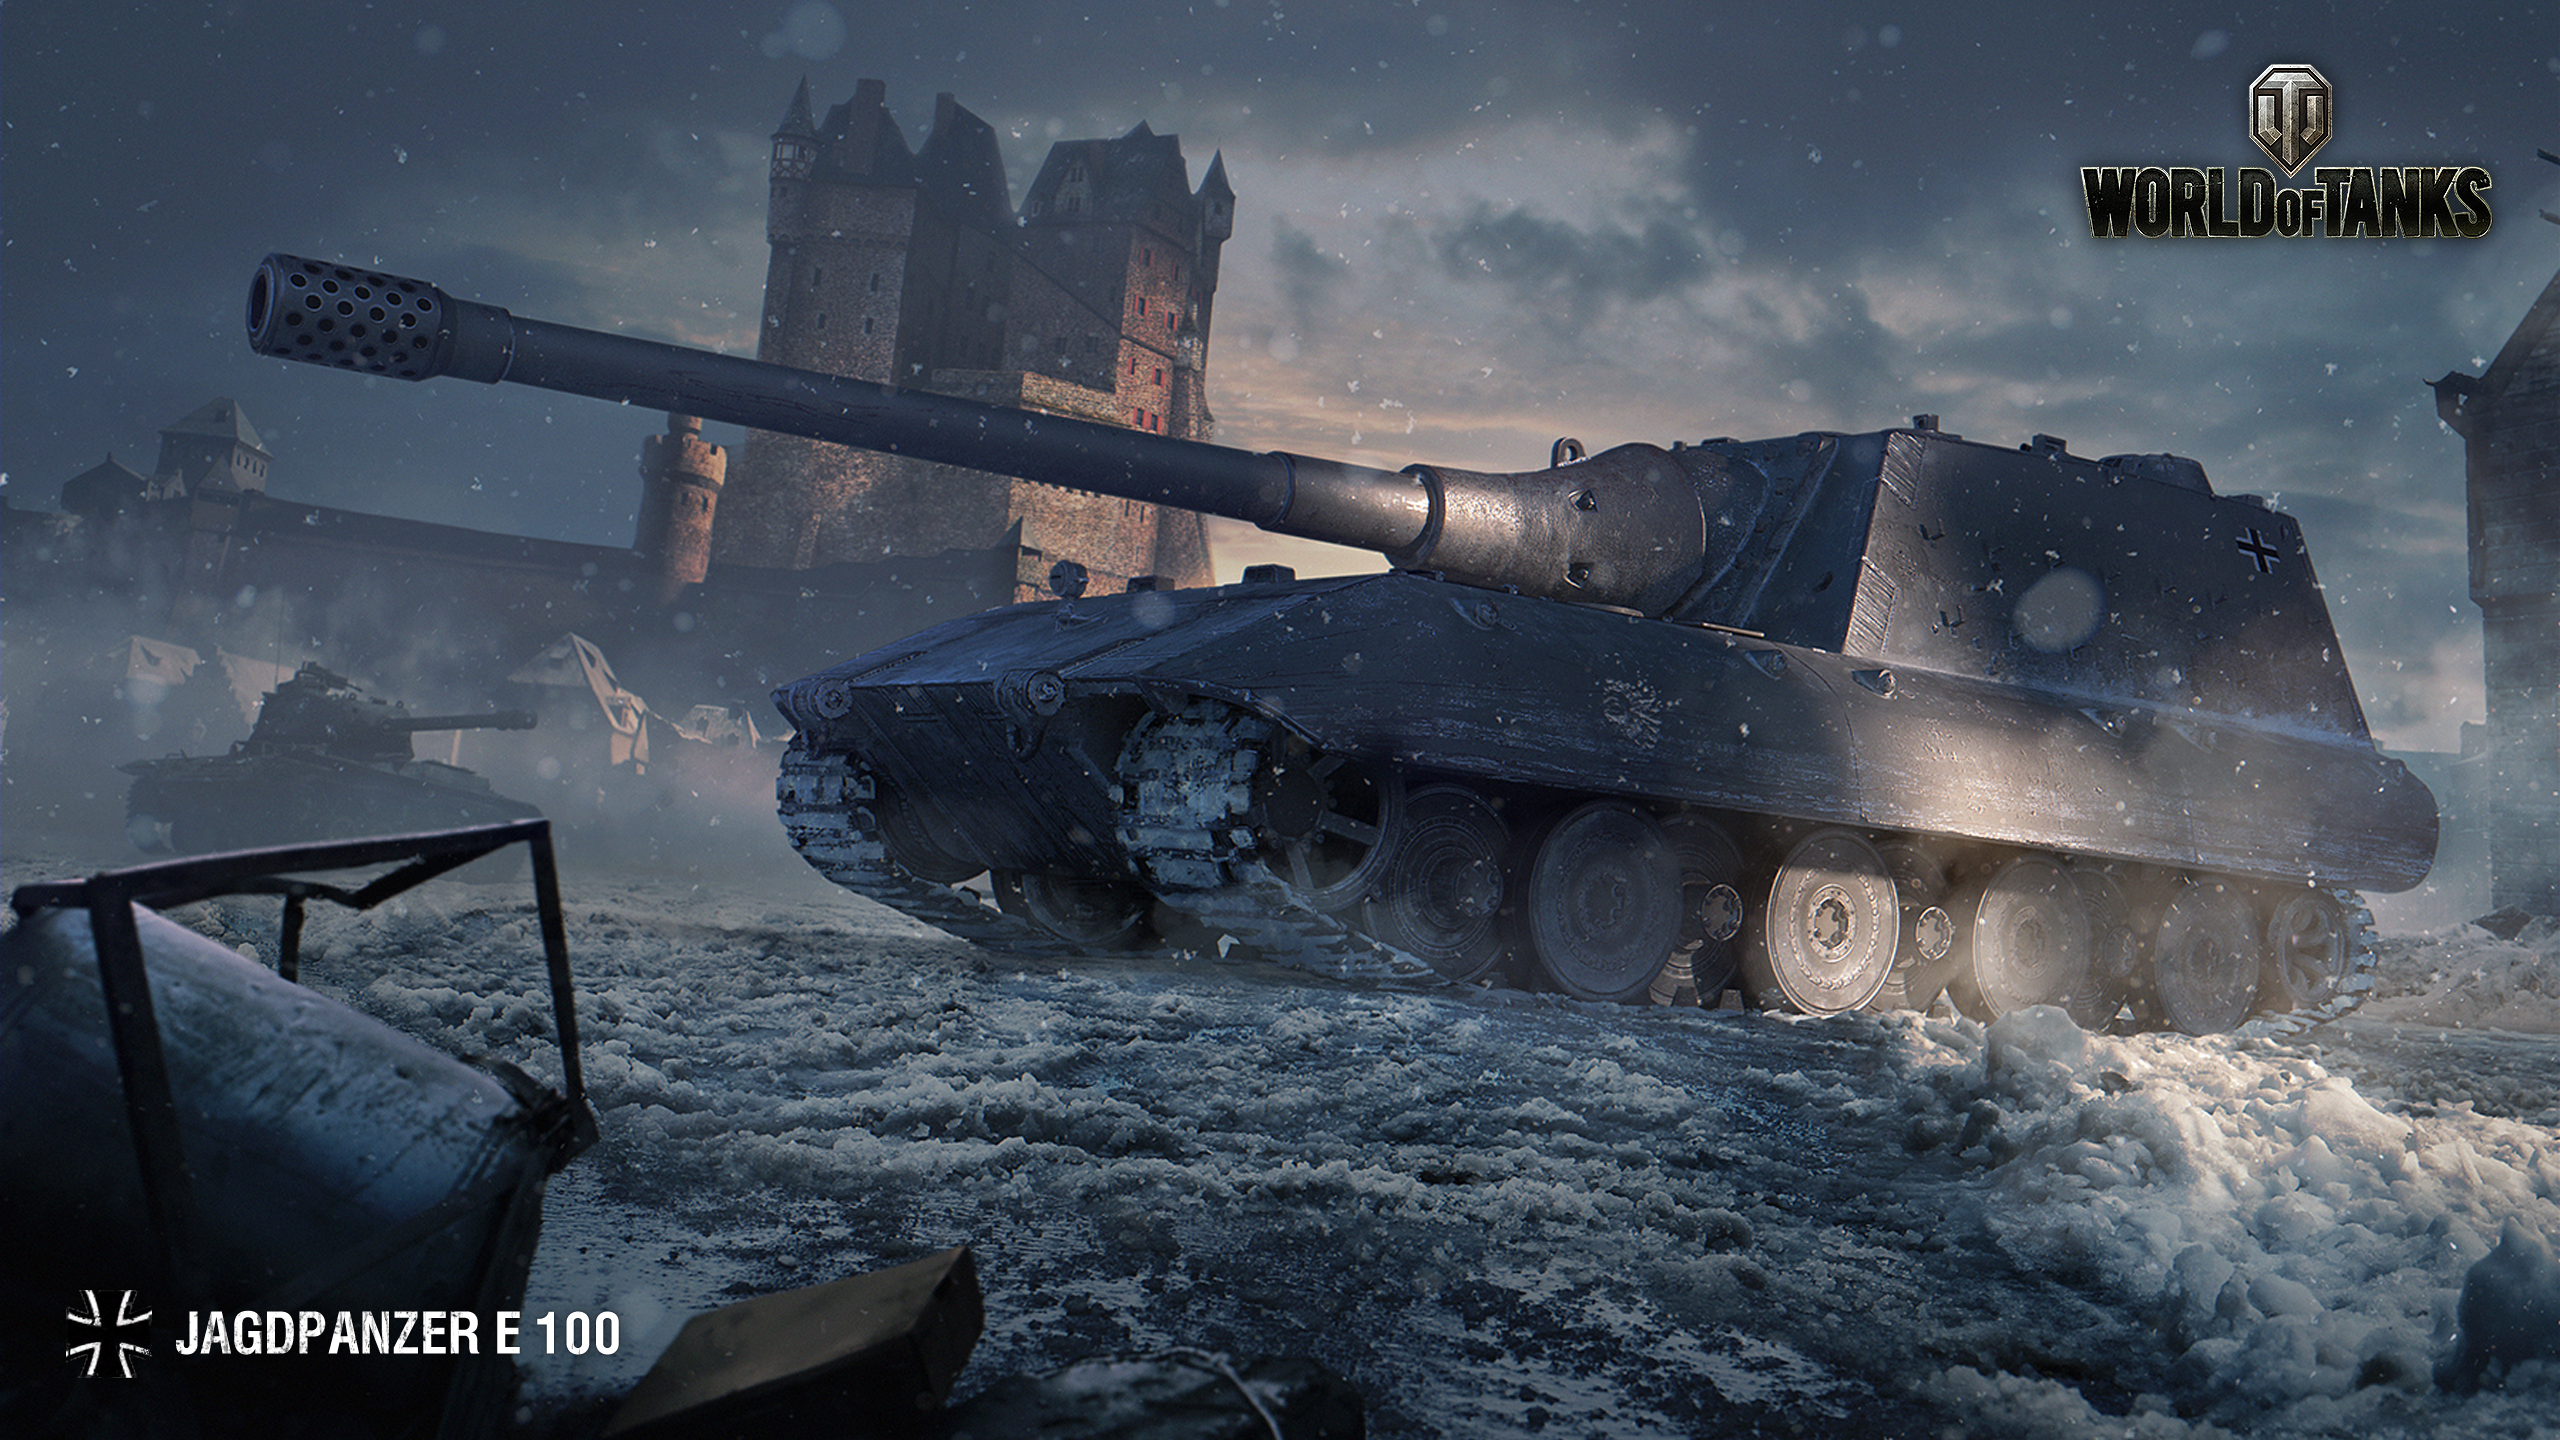 February 2016: Wallpaper & Calendar | Art | World of Tanks